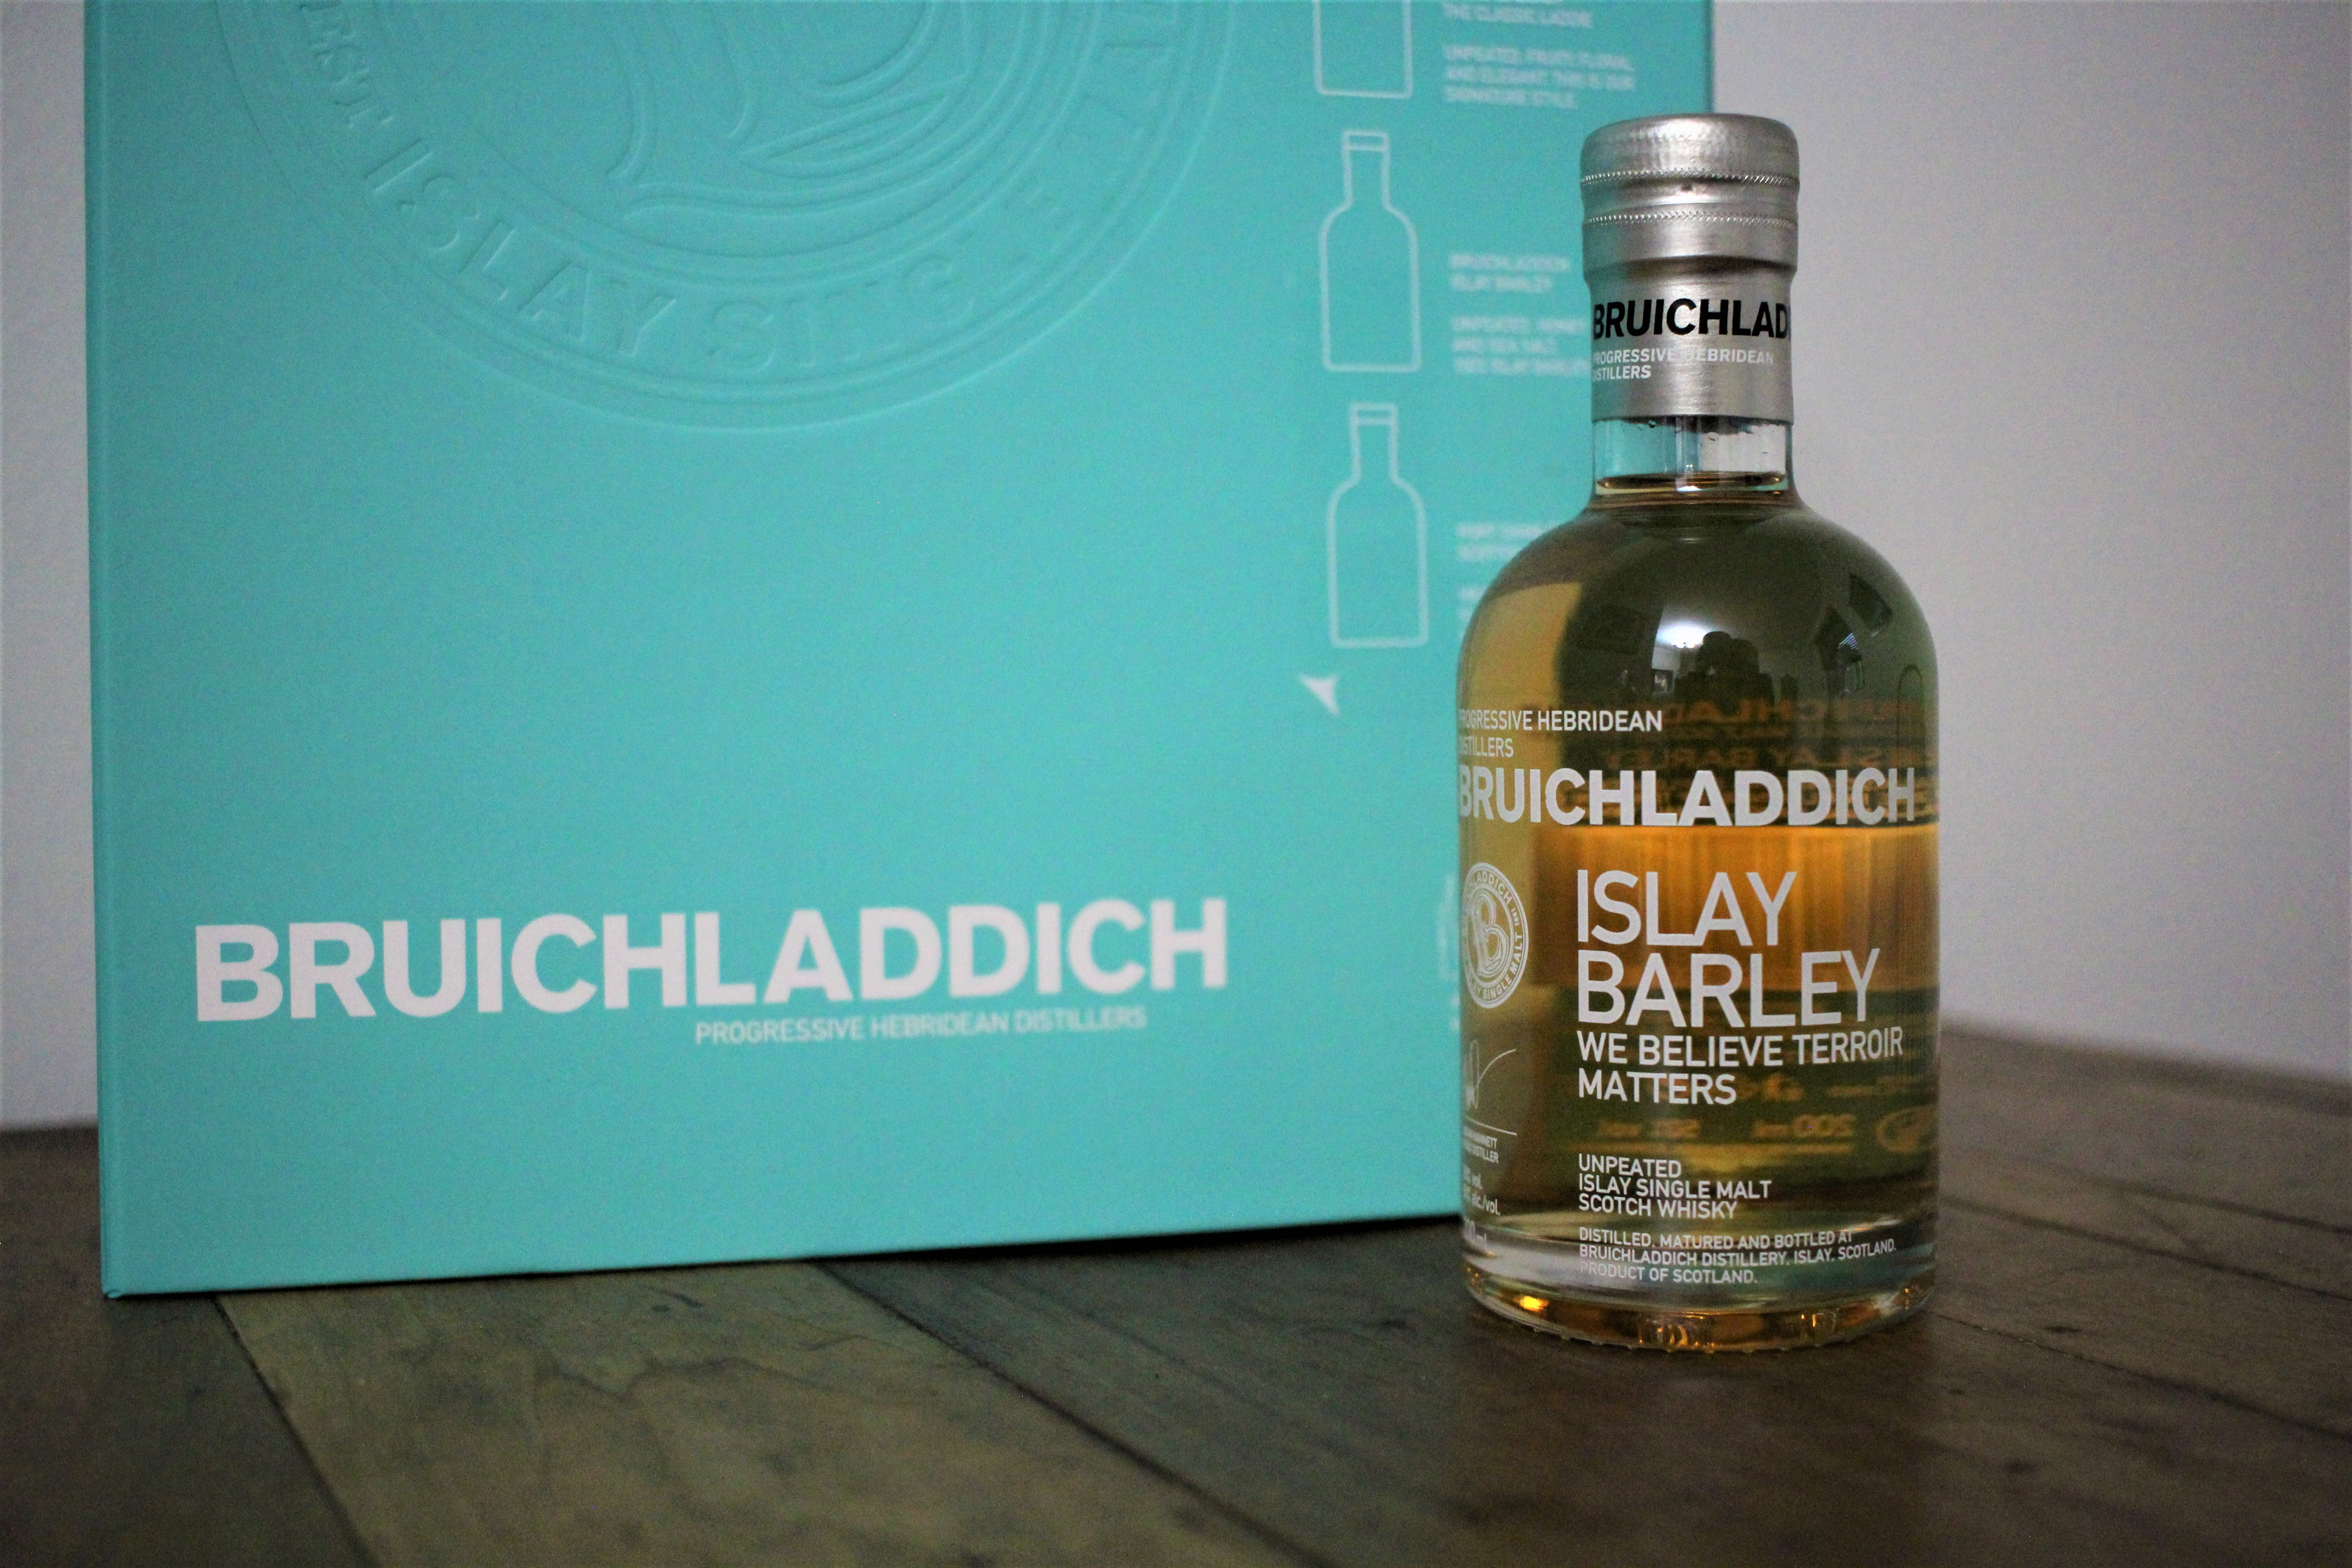 Bruichladdich Unpeated Islay Barley with Dan & Ryan